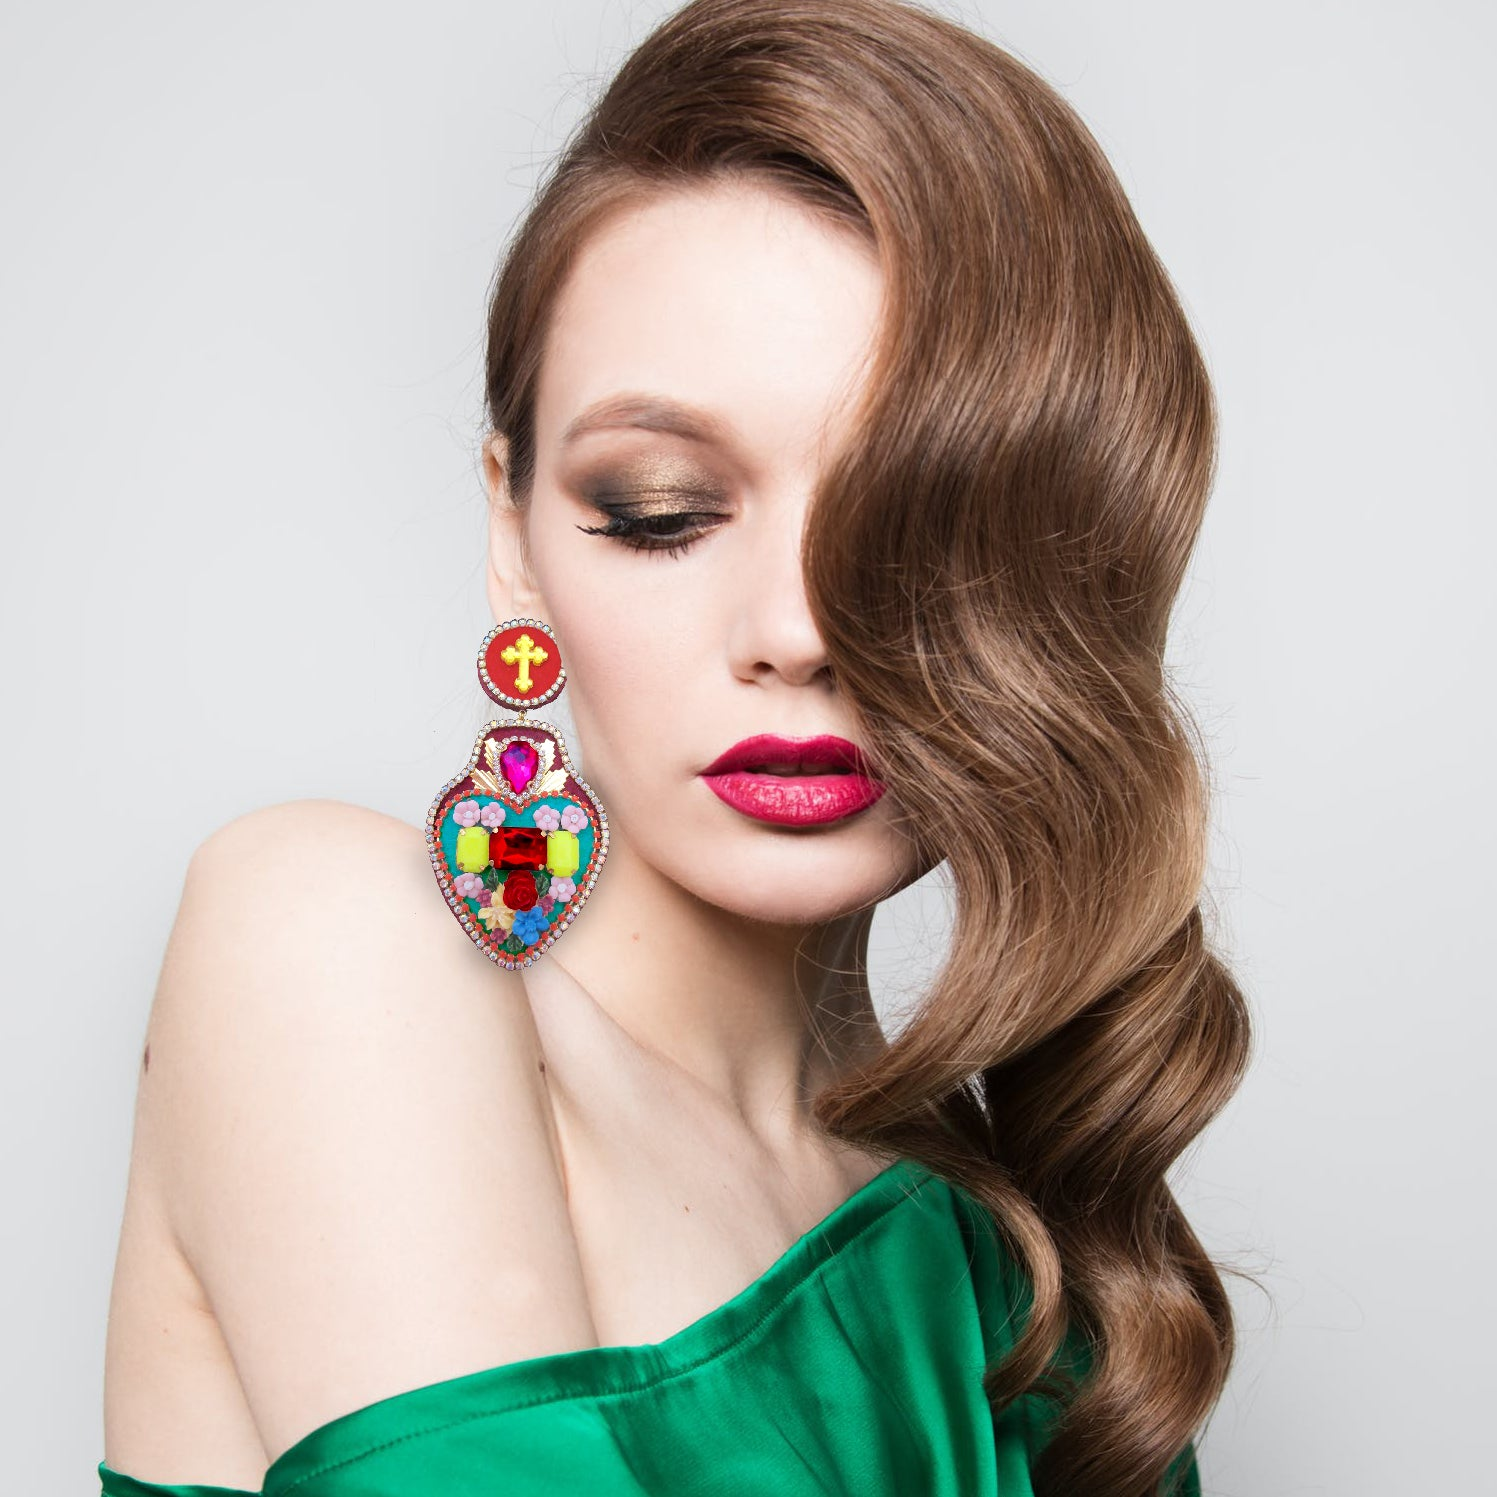 mouchkine-jewelry-earrings-style-fashion-luxury-chic